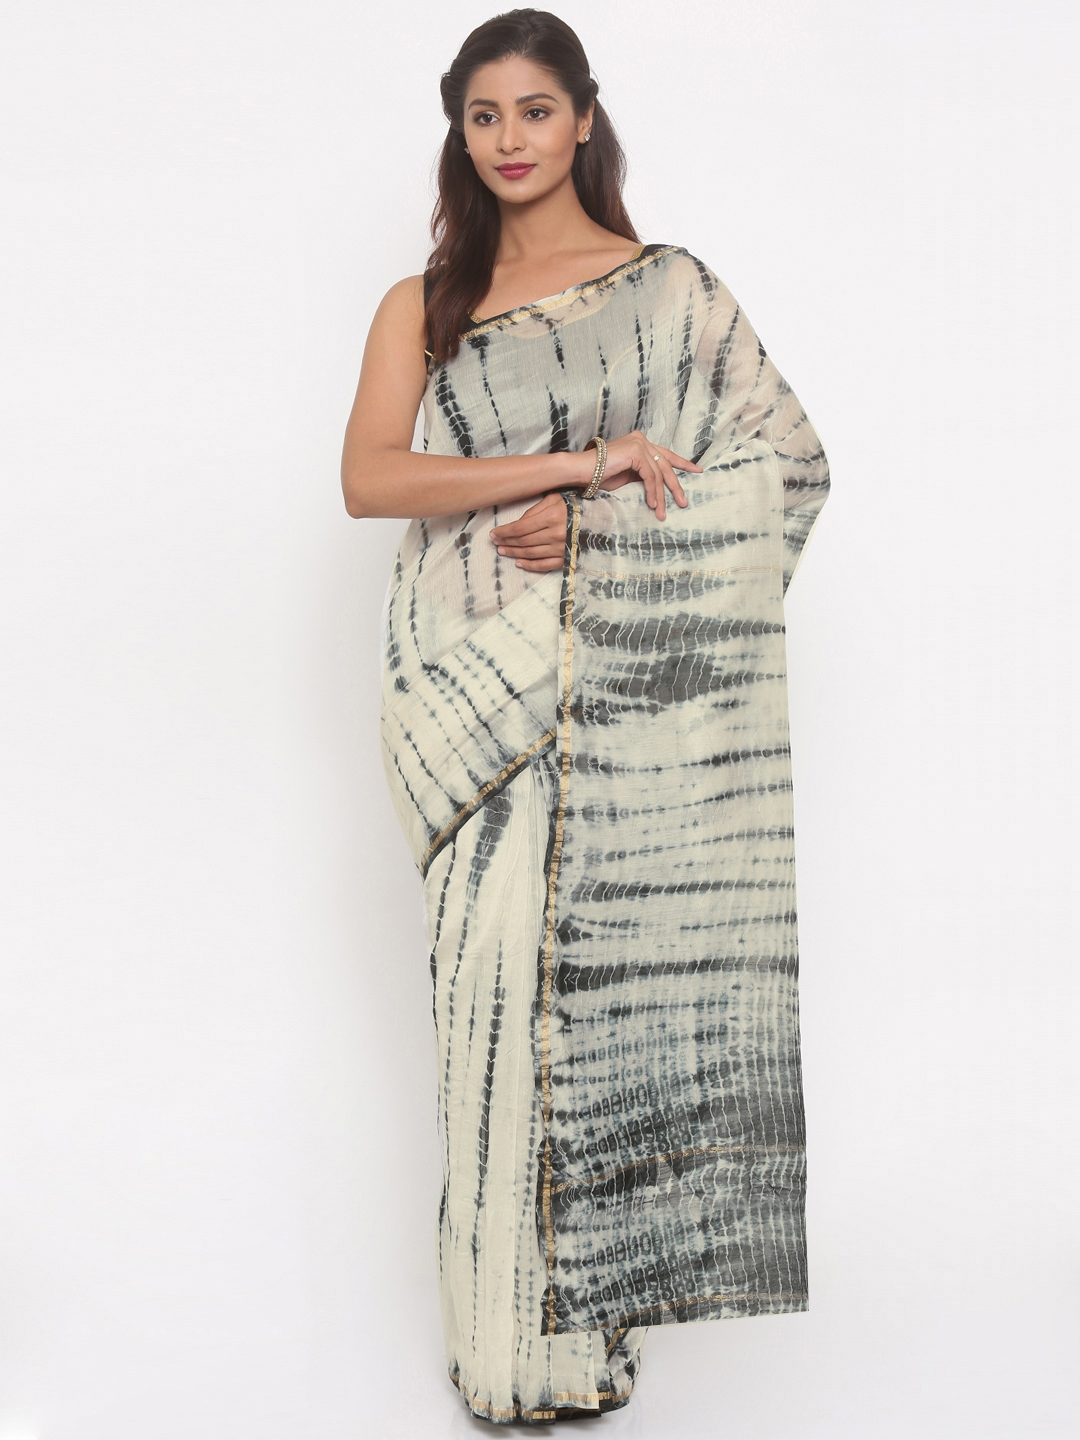 d516f7210a Buy Gocoop Off White & Black Silk Cotton Printed Chanderi Saree - Sarees  for Women 2122903 | Myntra